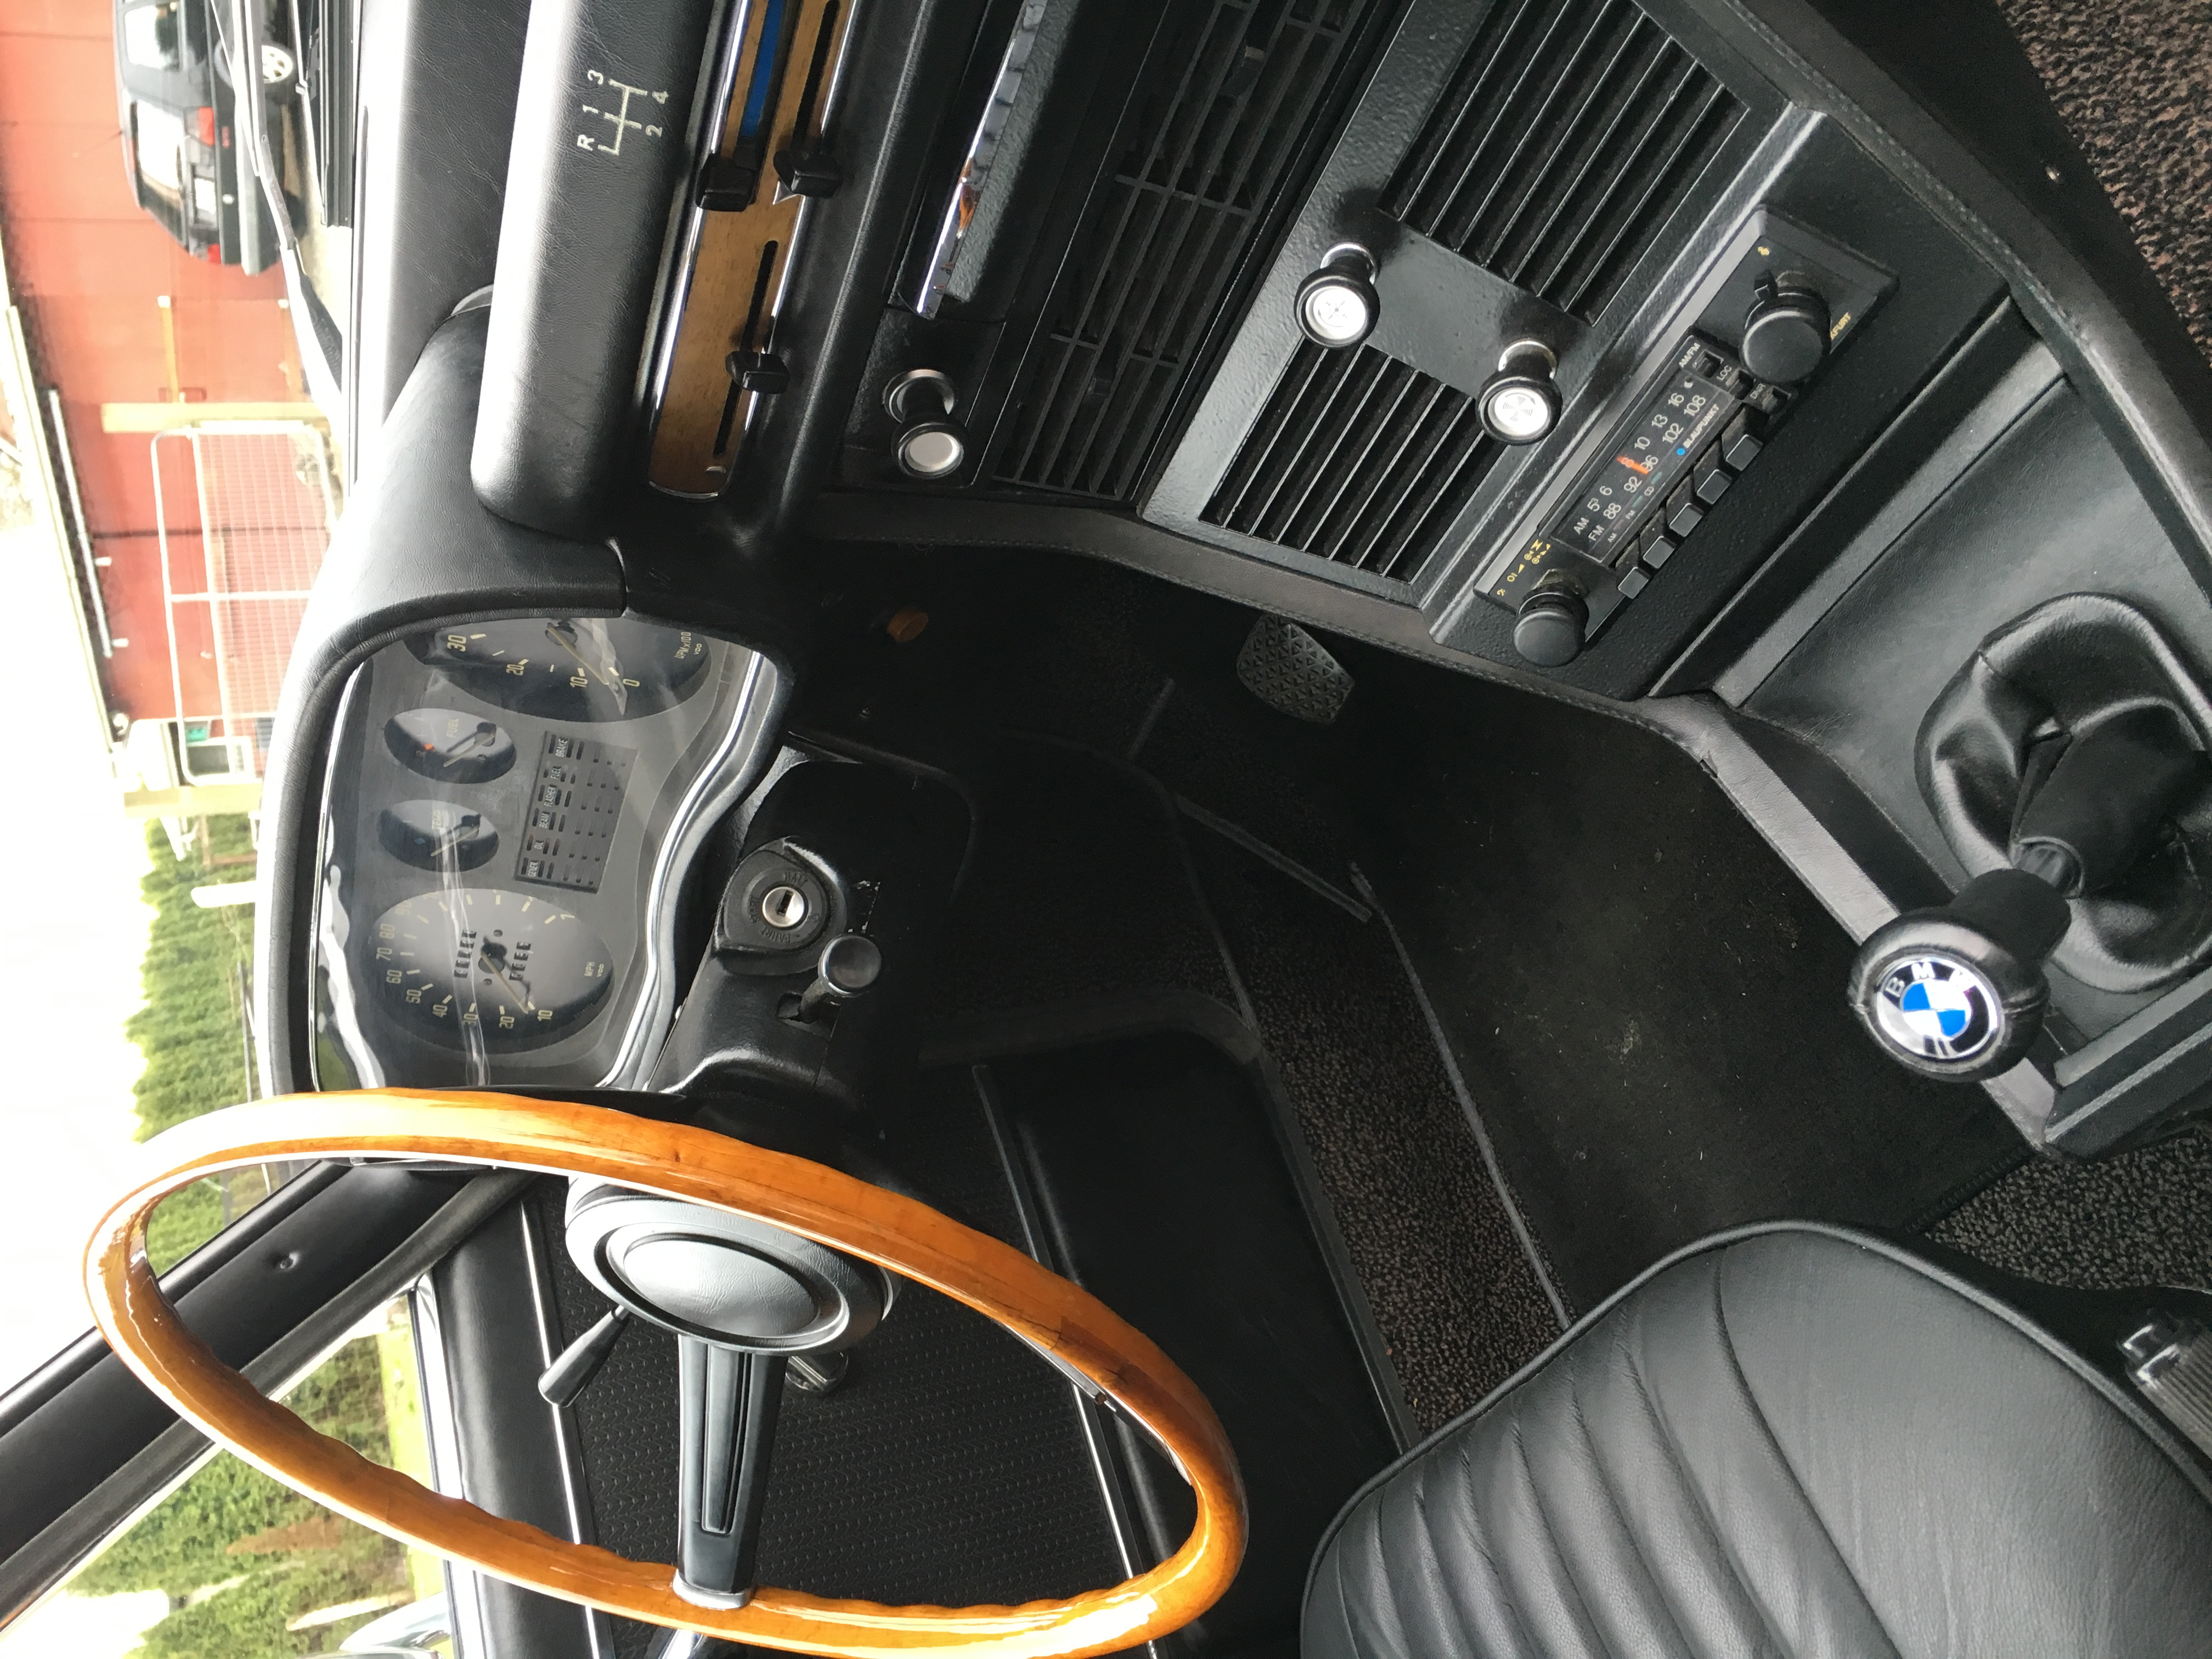 1970 Bmw 2800 R Front Dash And Steering Wheel A 06mar16